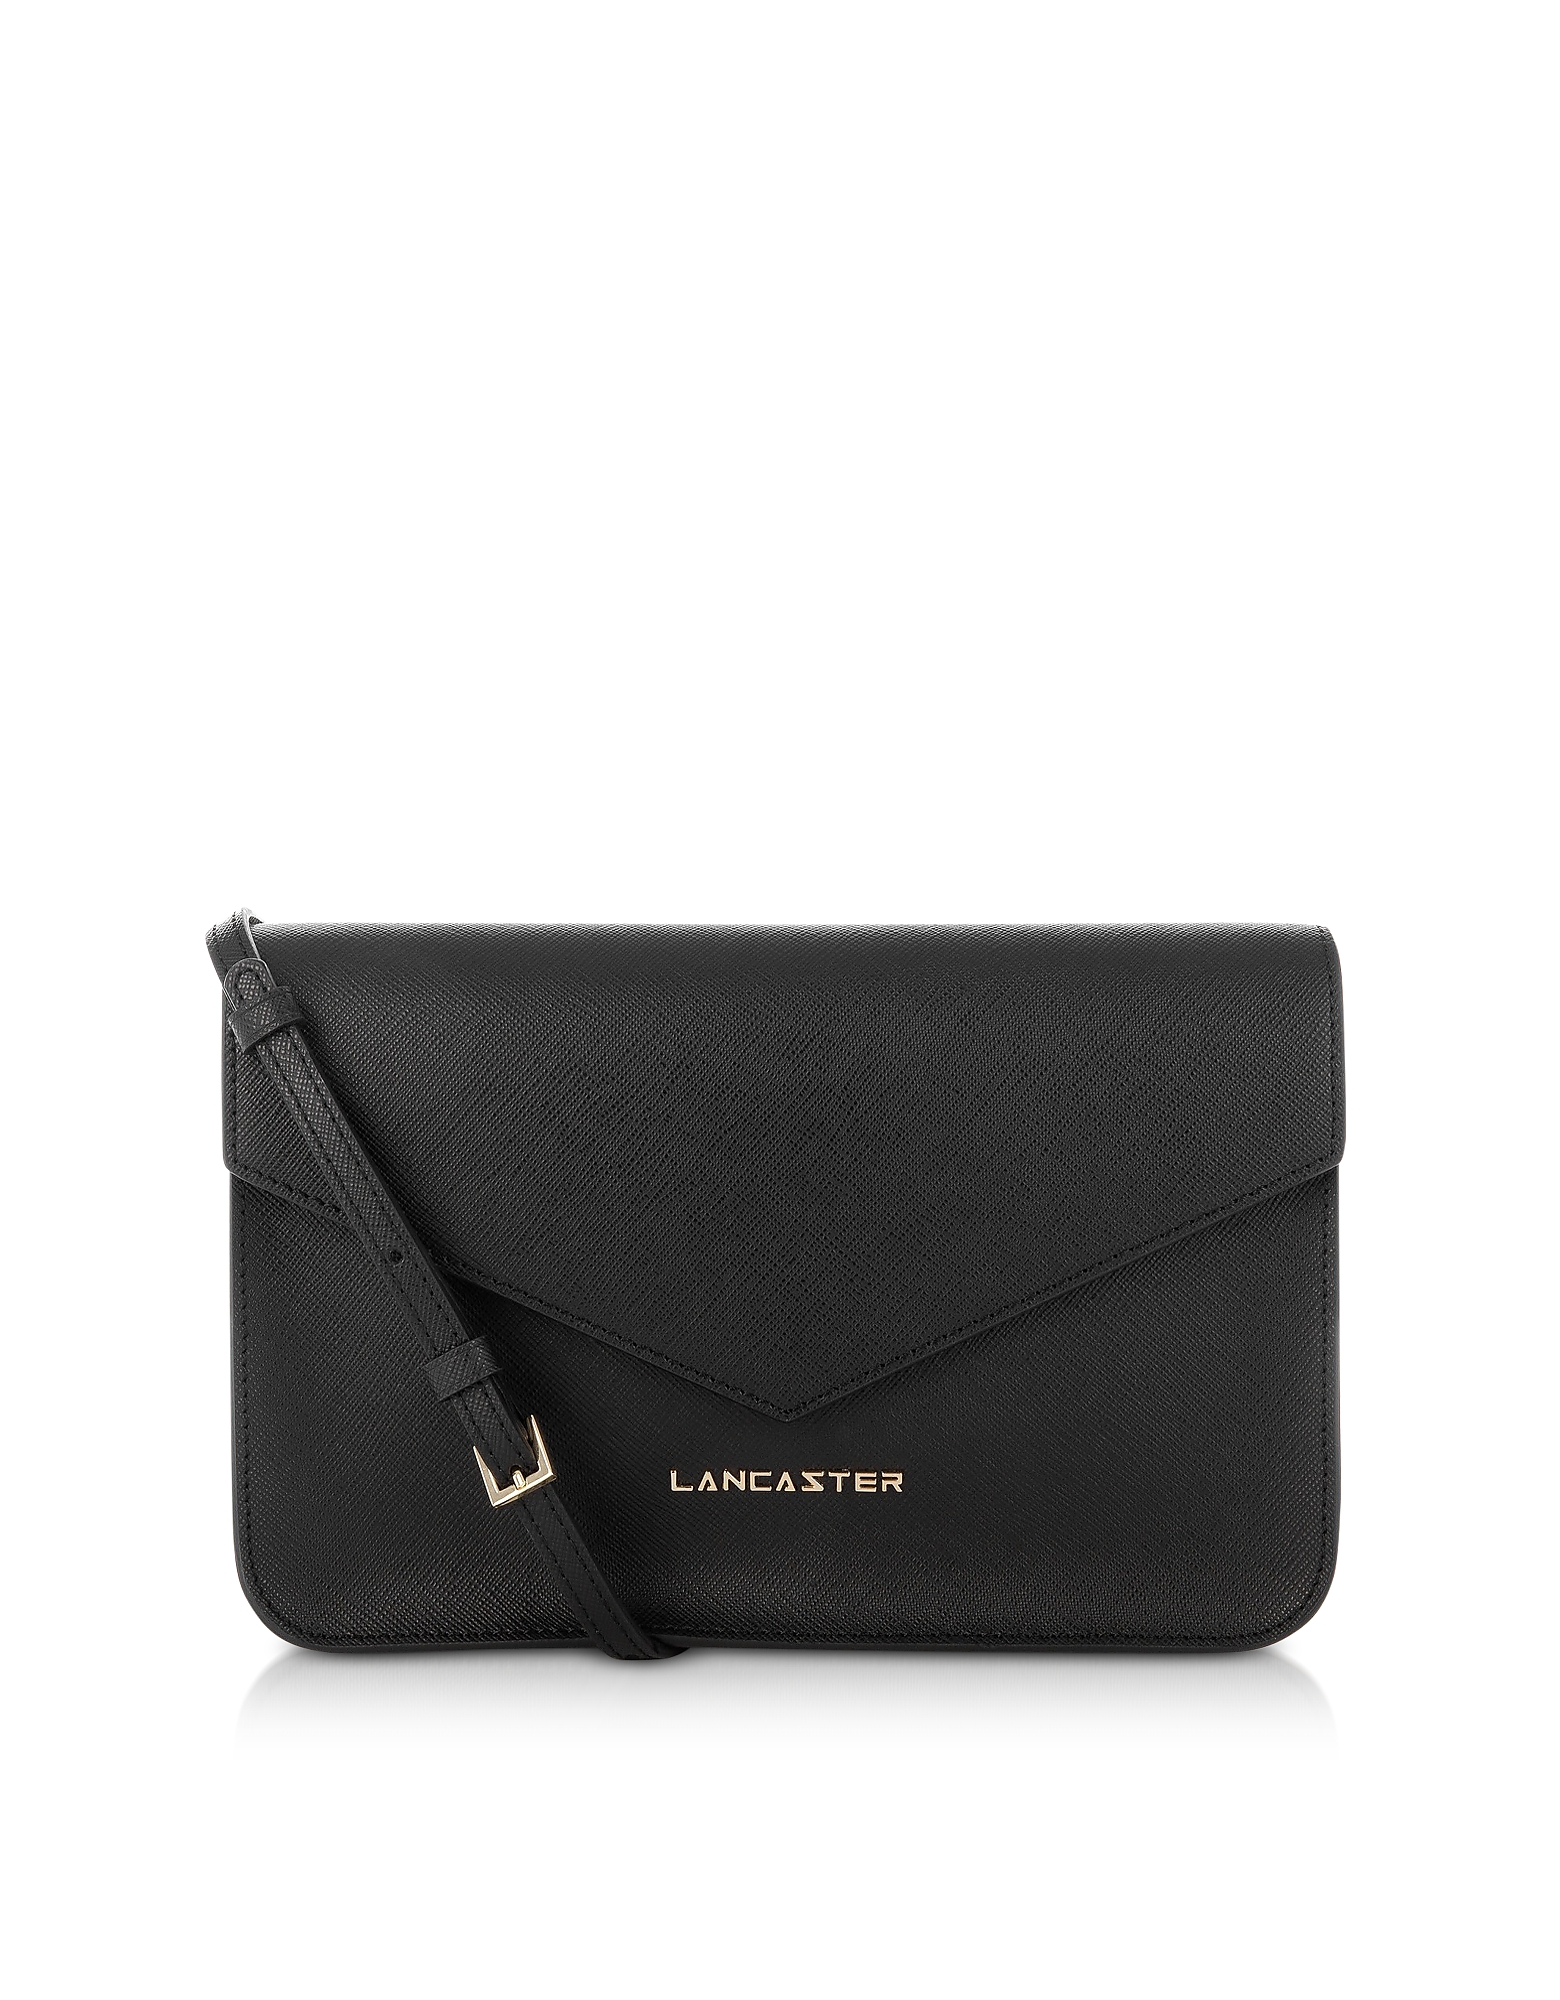 Clutch in Pelle Saffiano Nera